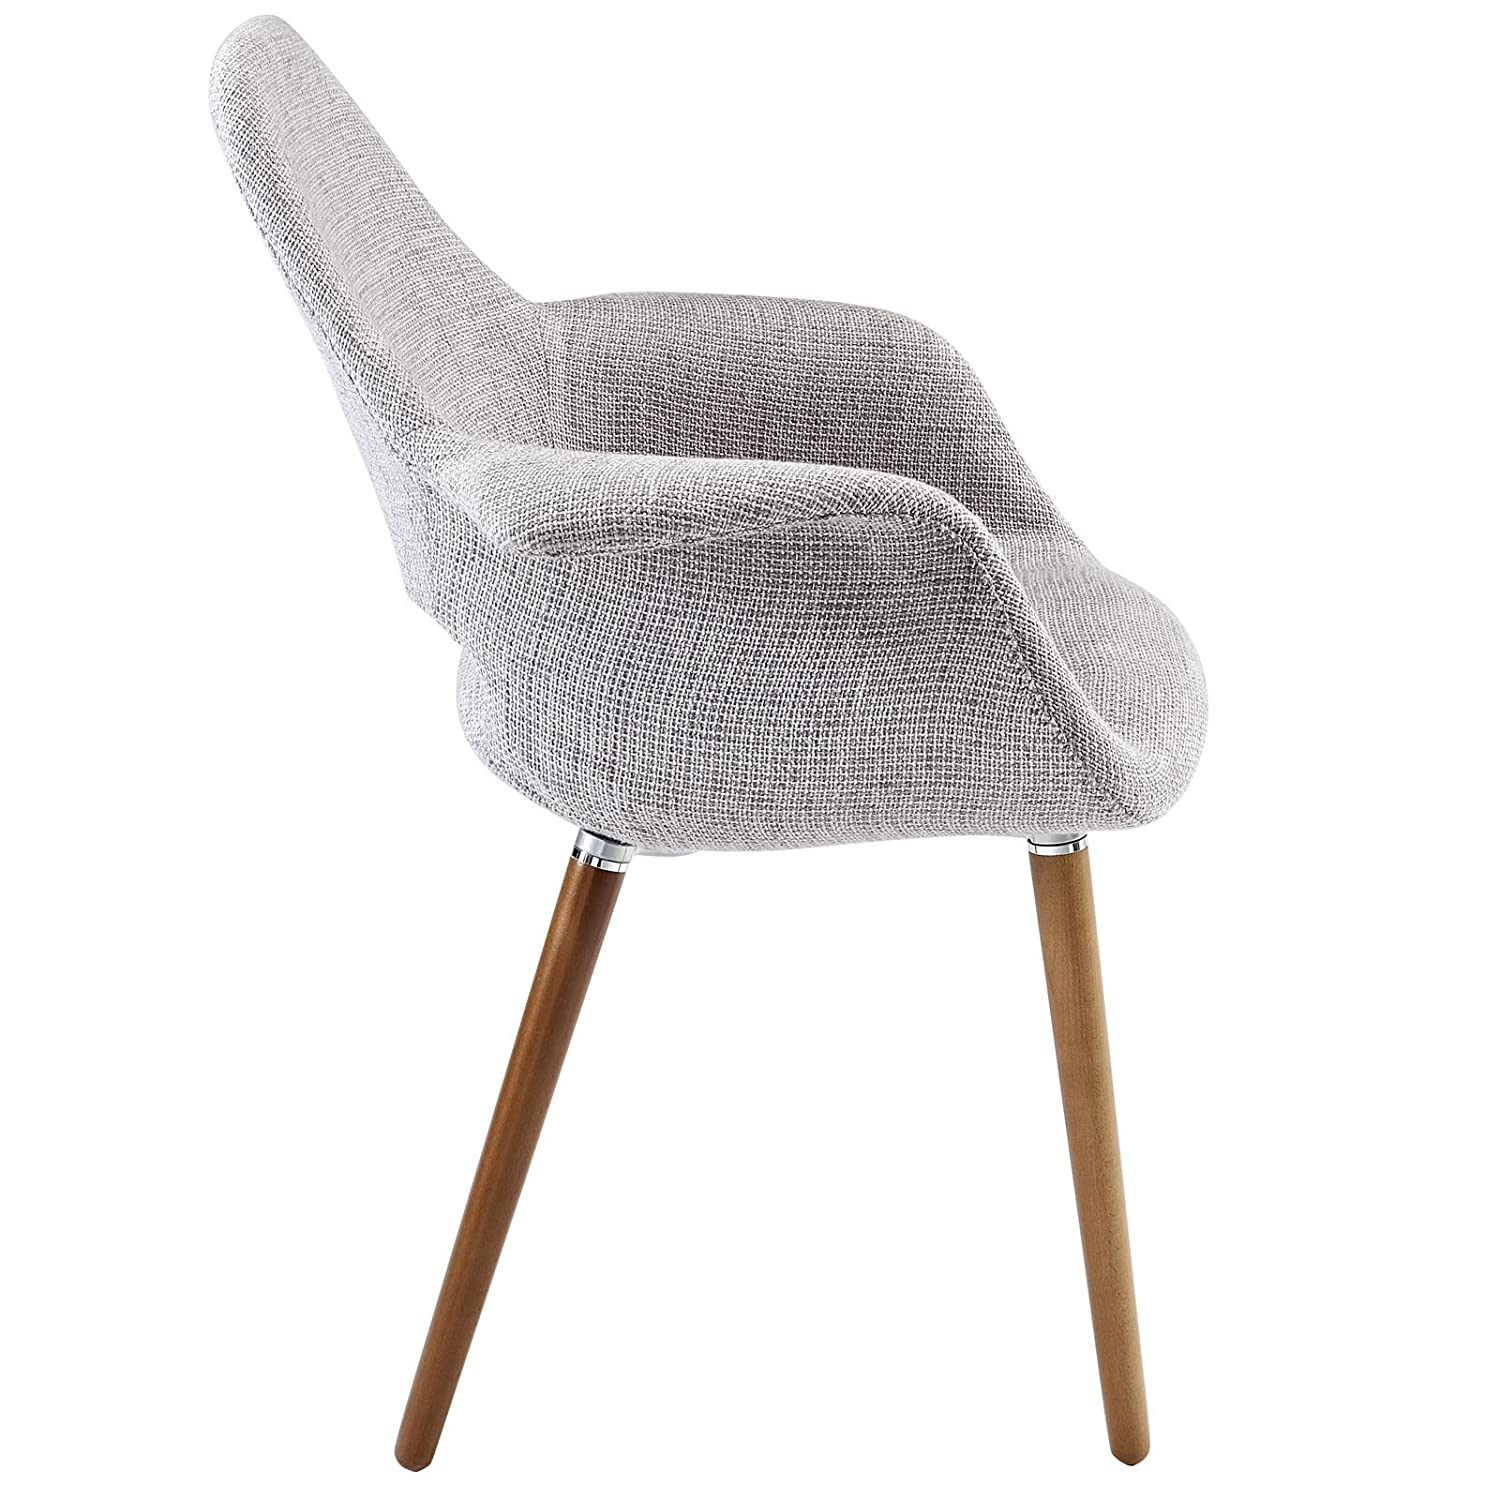 Amazon.com   Modway Aegis Mid Century Modern Upholstered Fabric Organic  Dining Armchair With Wood Legs In Light Gray   Chairs